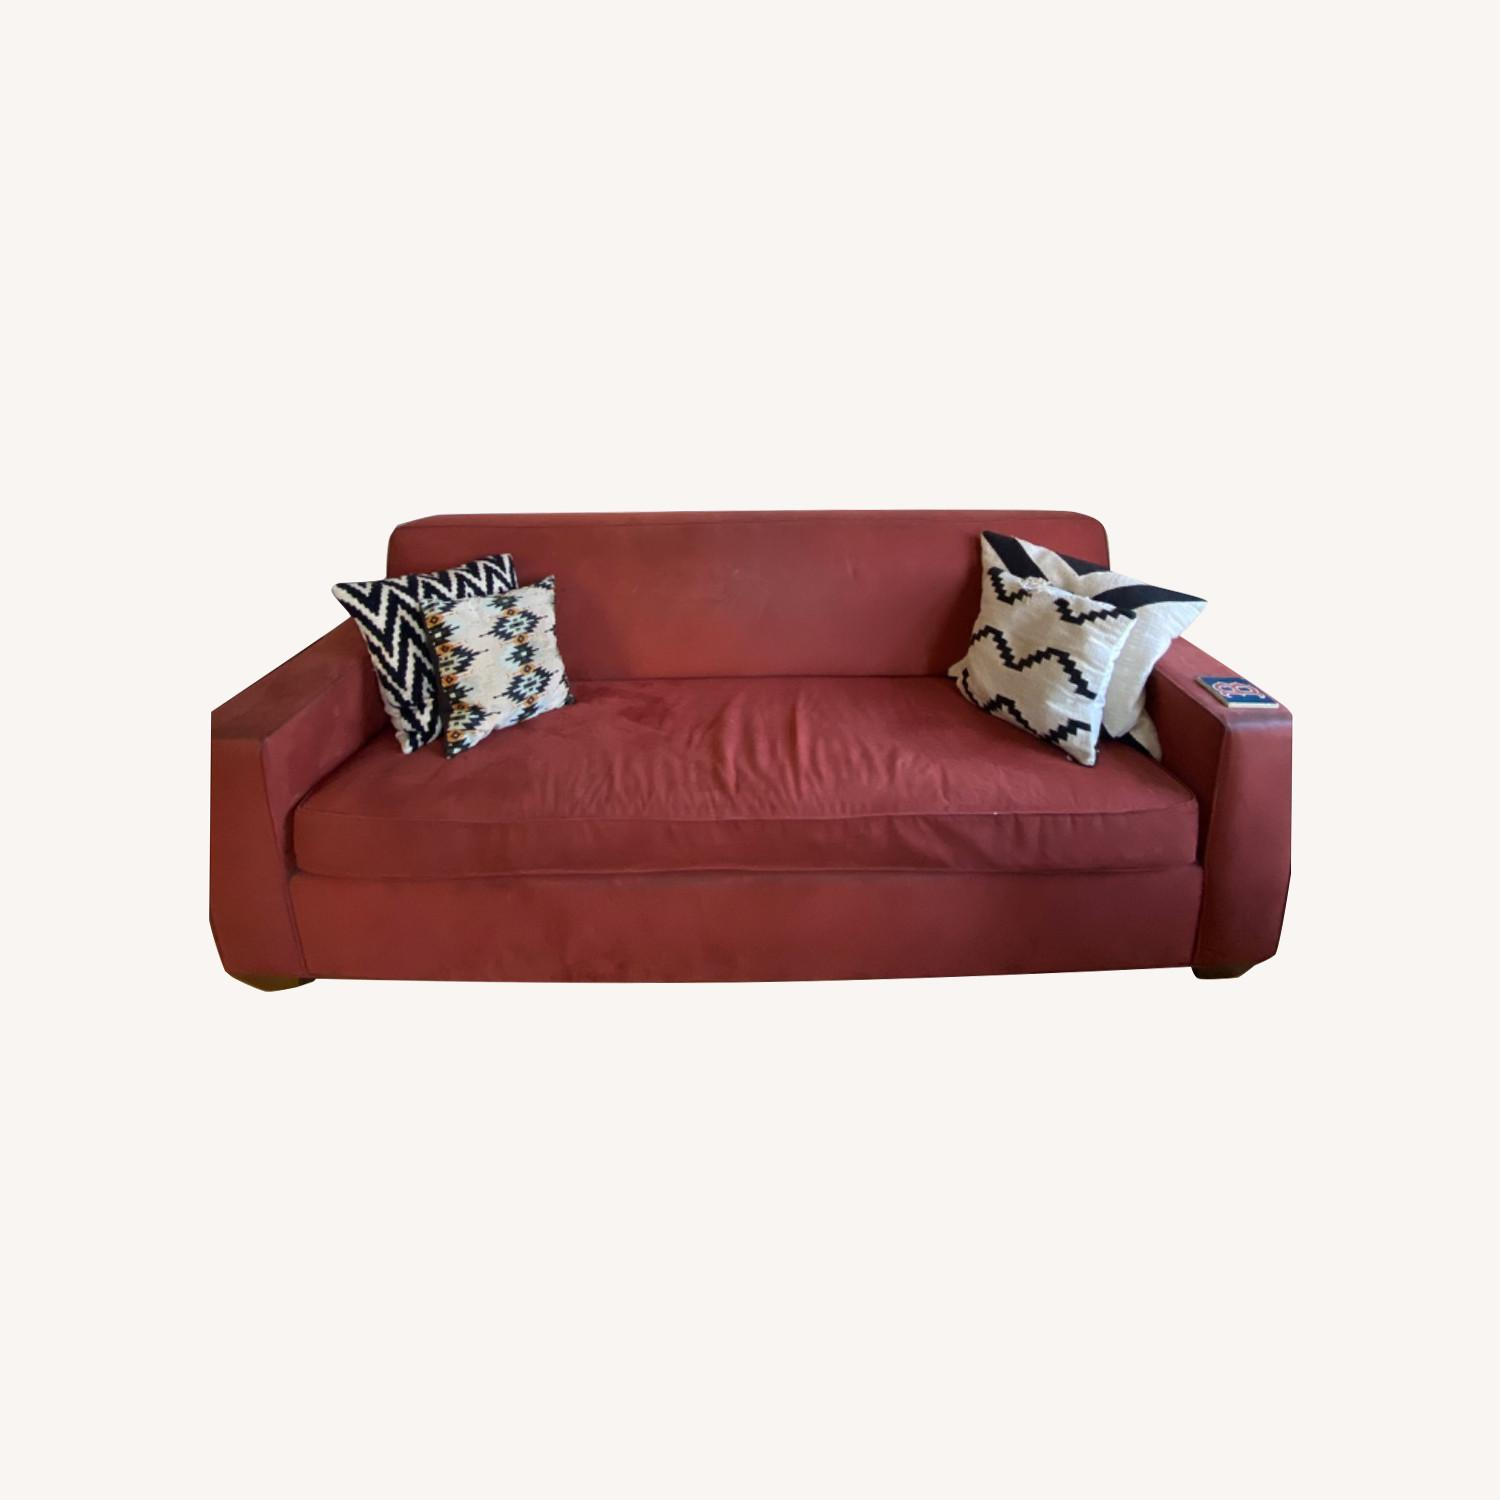 Queen Size Sleeper Couch - image-0